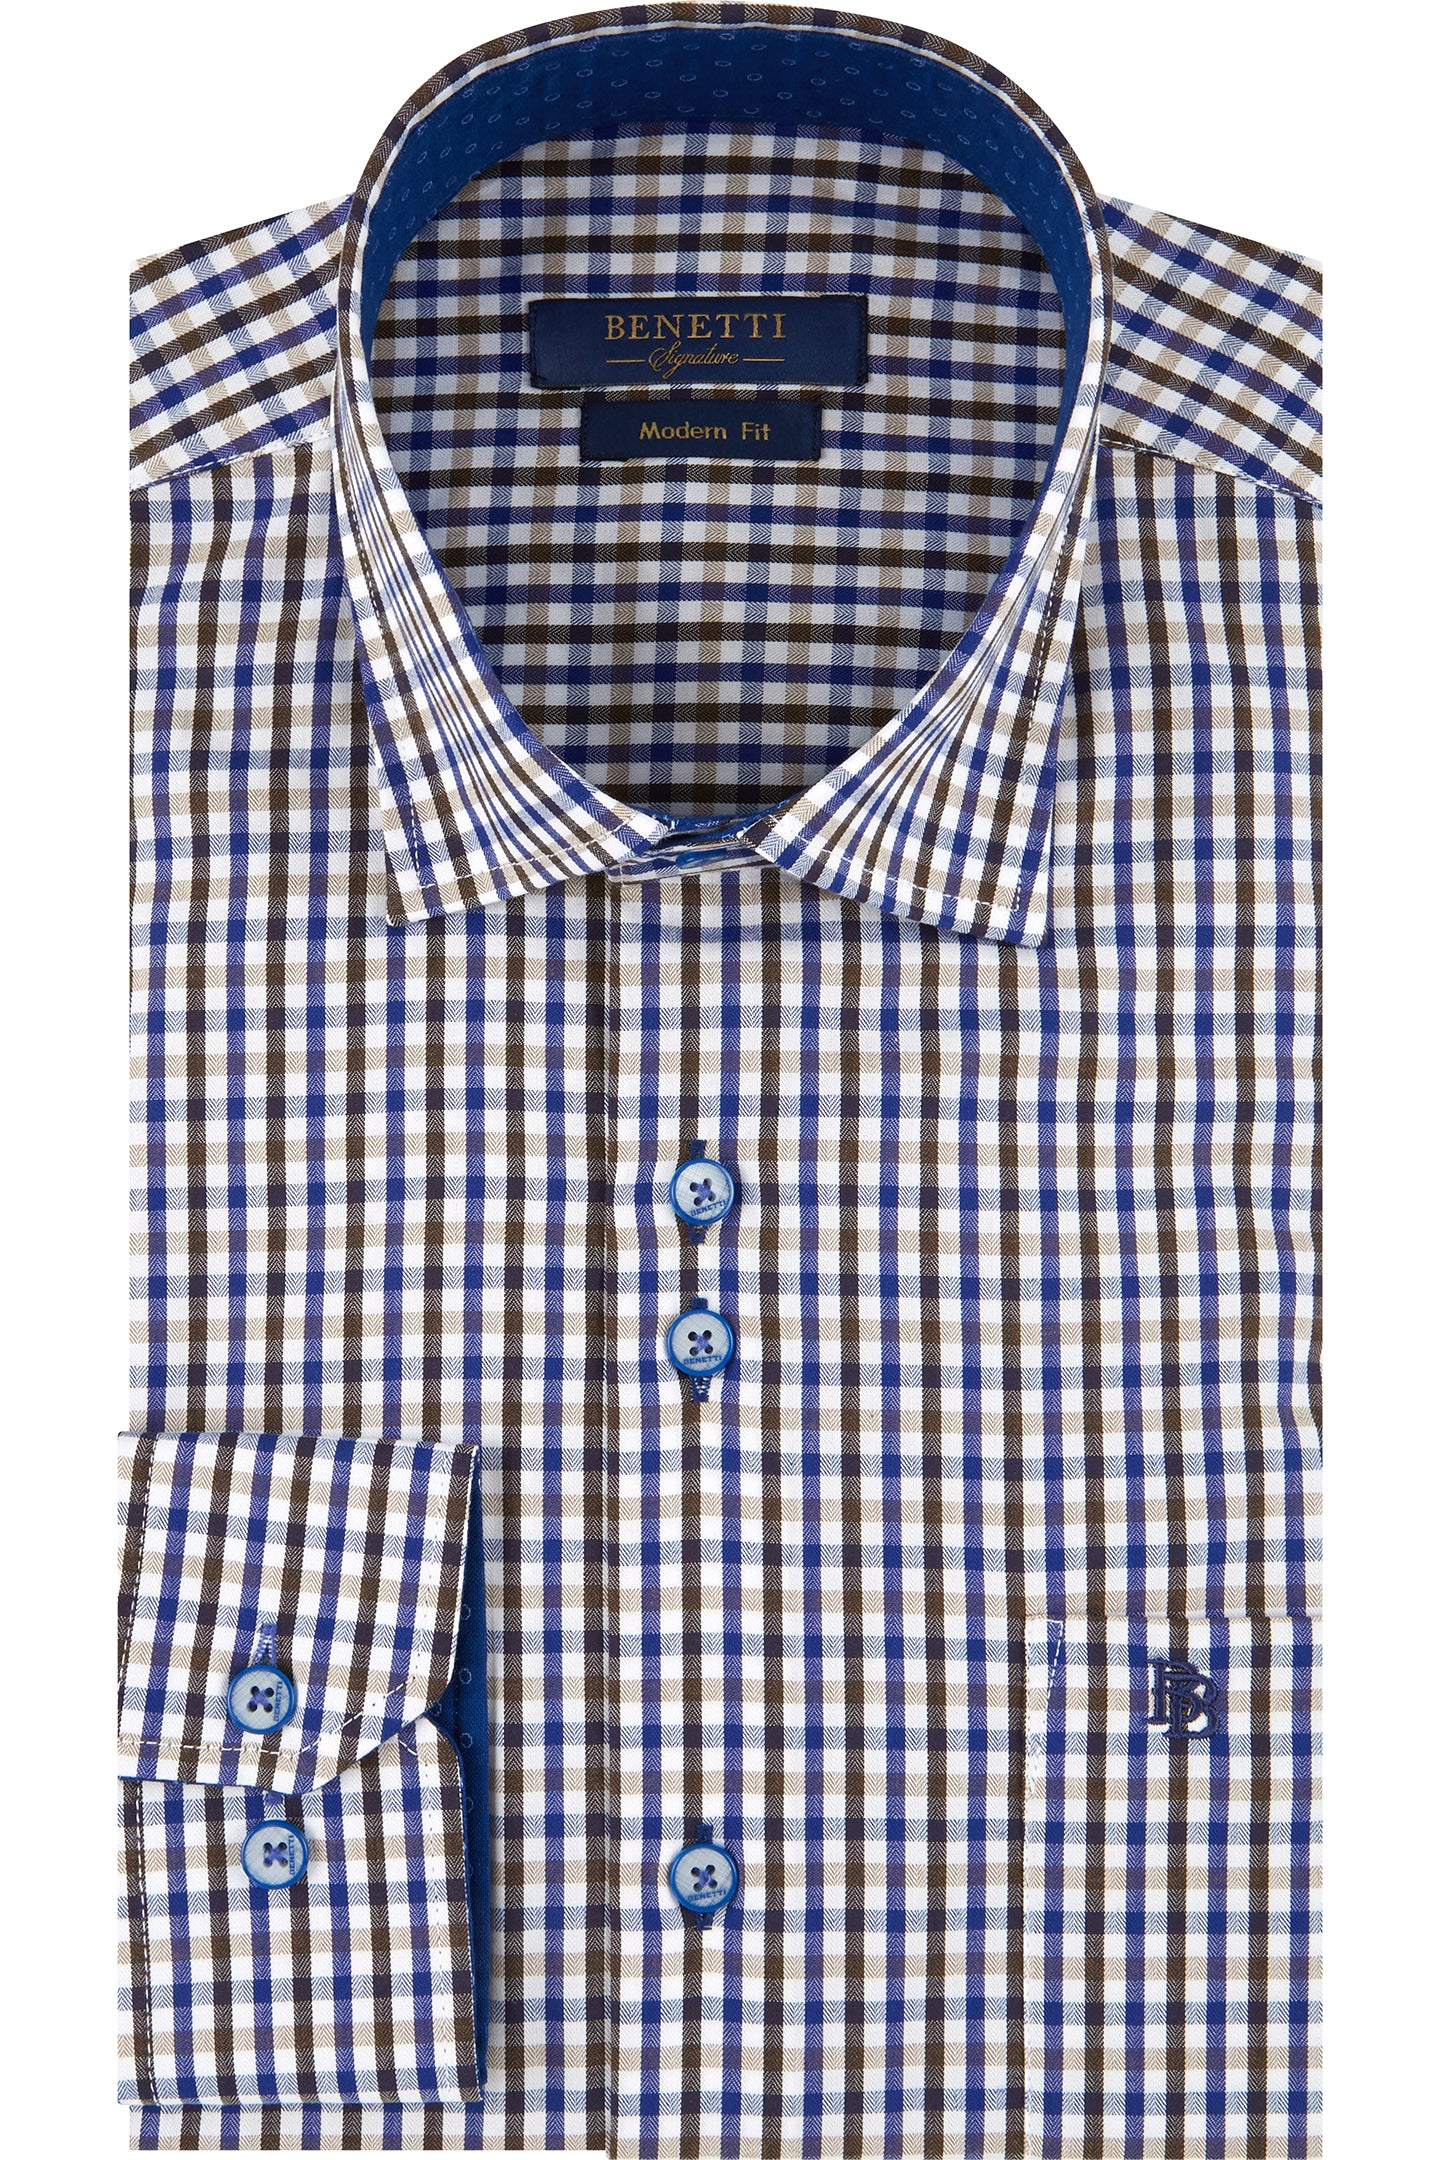 Benetti Claude Long Sleeve Shirt